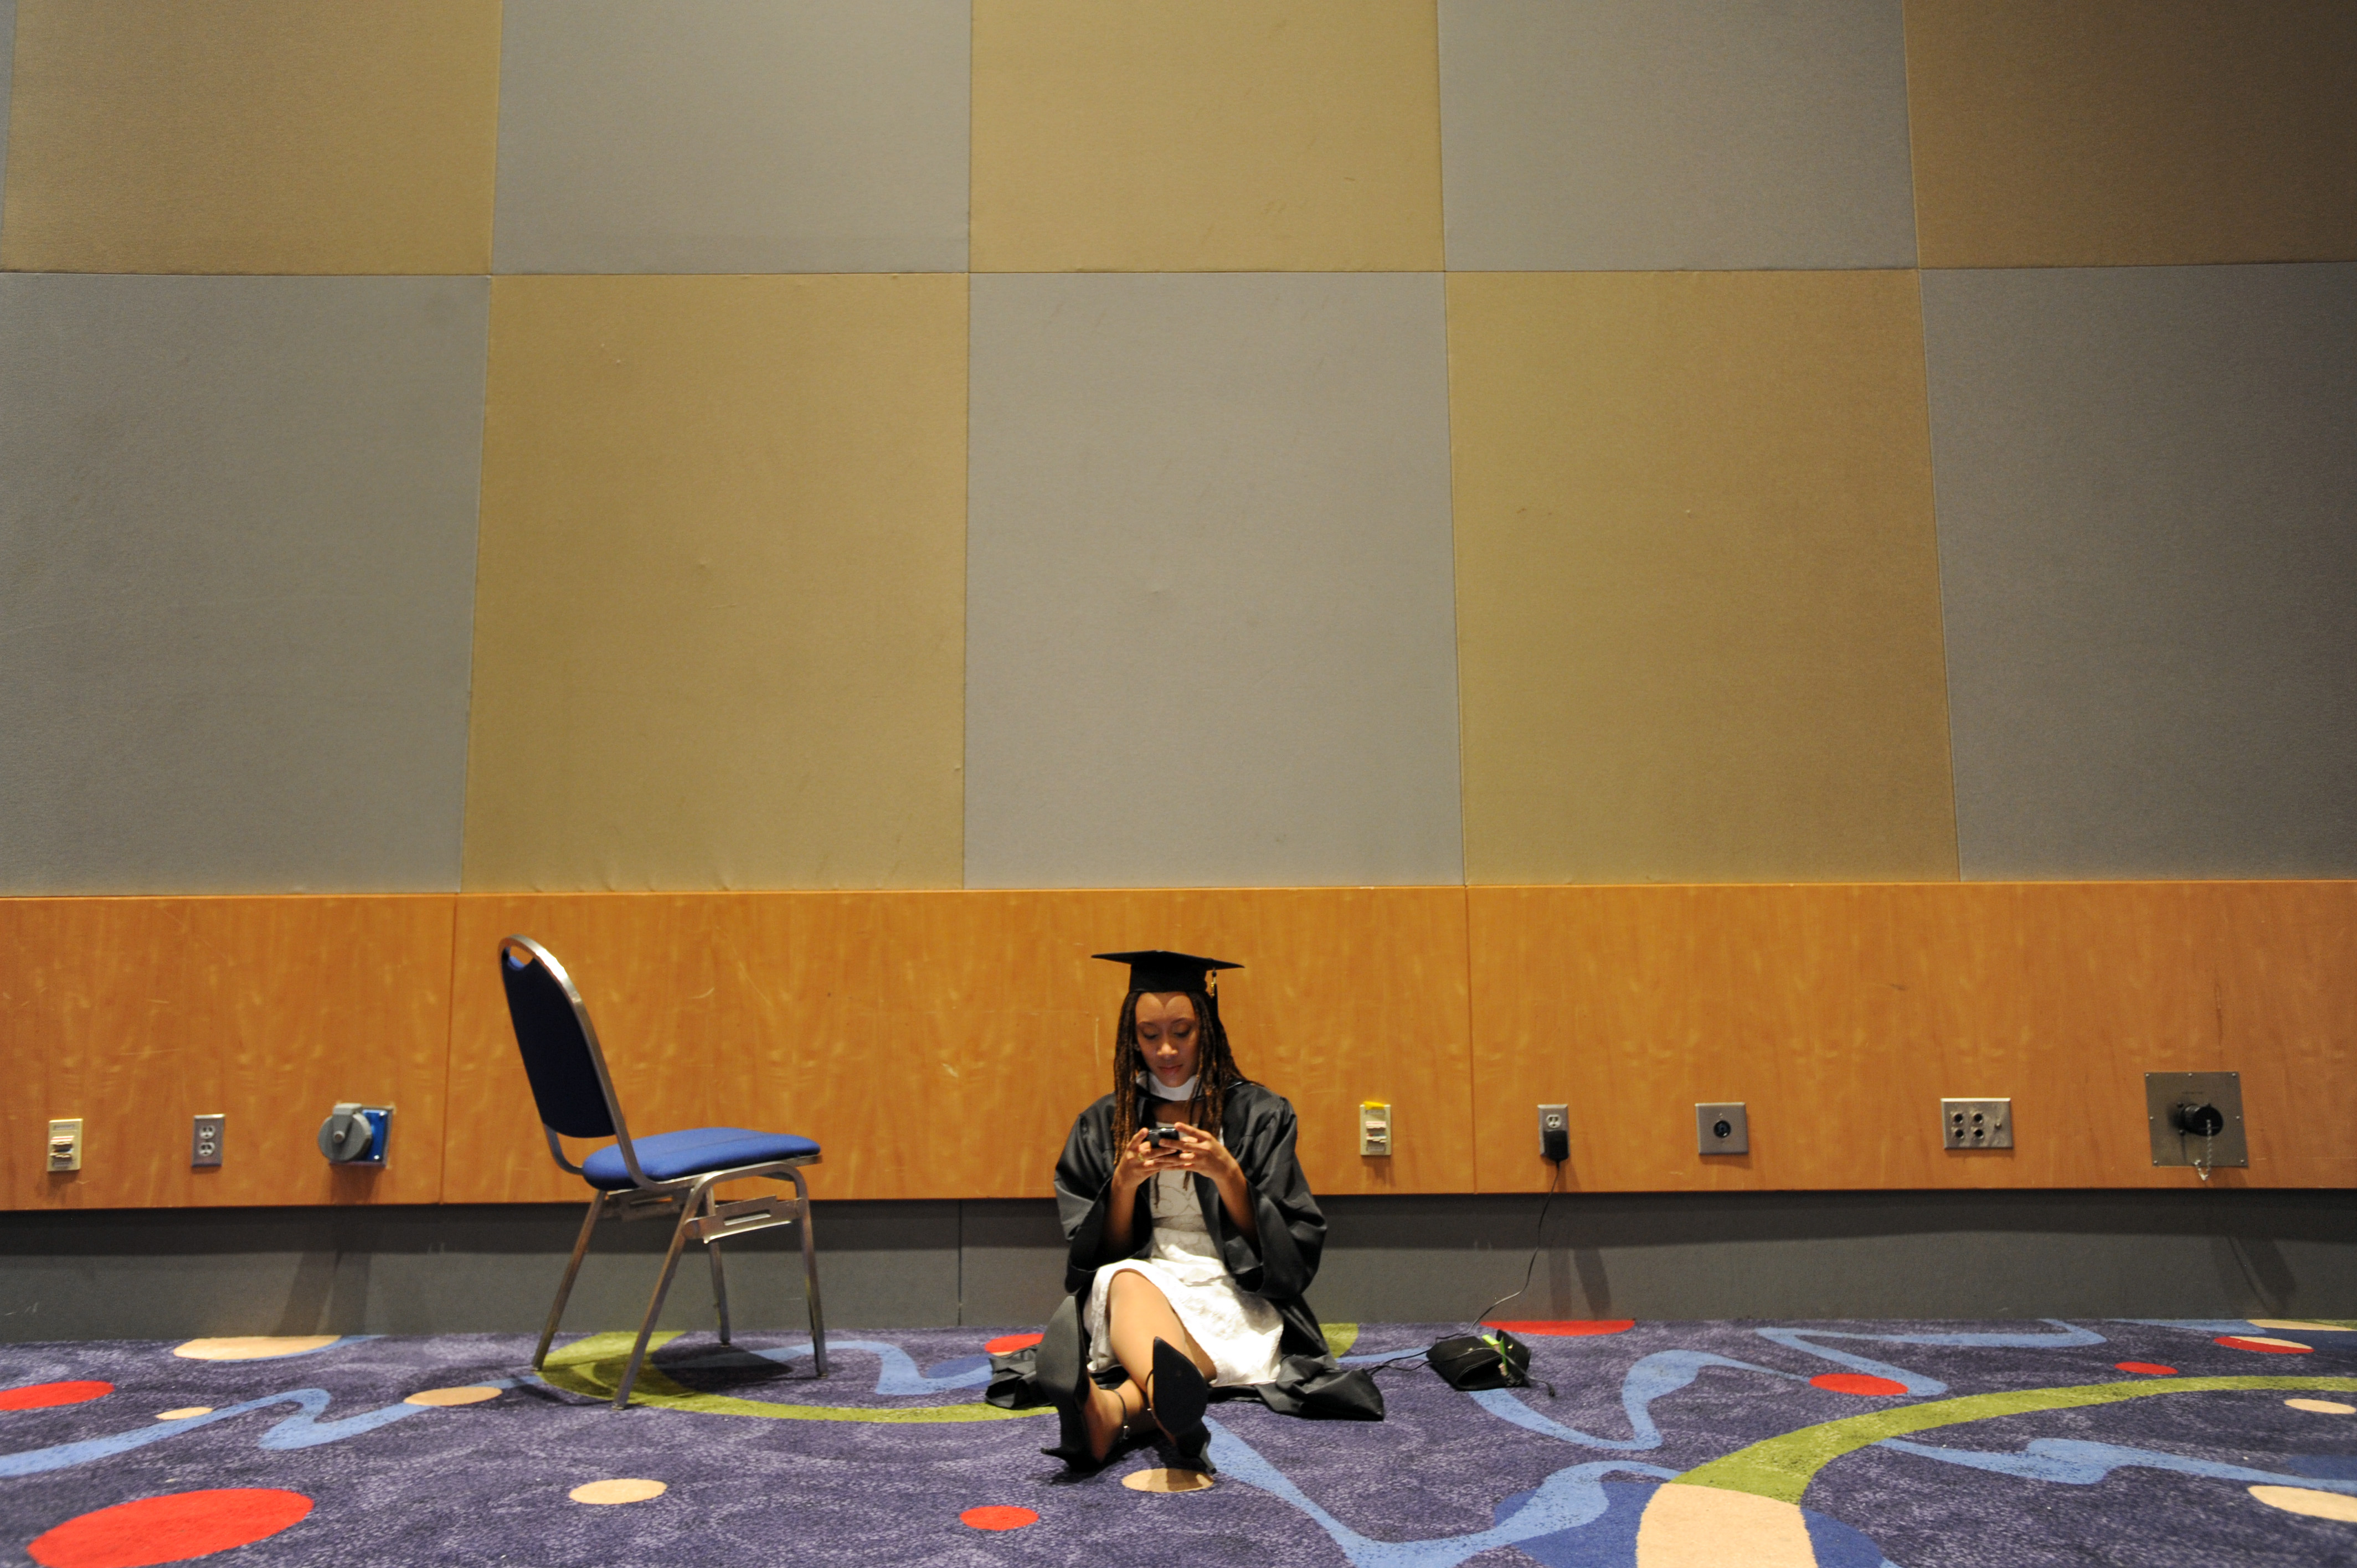 Spelman College graduating senior Vivian Aguayo, 20, of Silver Spring, Md., uses her mobile phone while waiting to participate in her commencement ceremony on Sunday, May 15, 2011, at the Georgia International Convention Center in College Park, Ga.